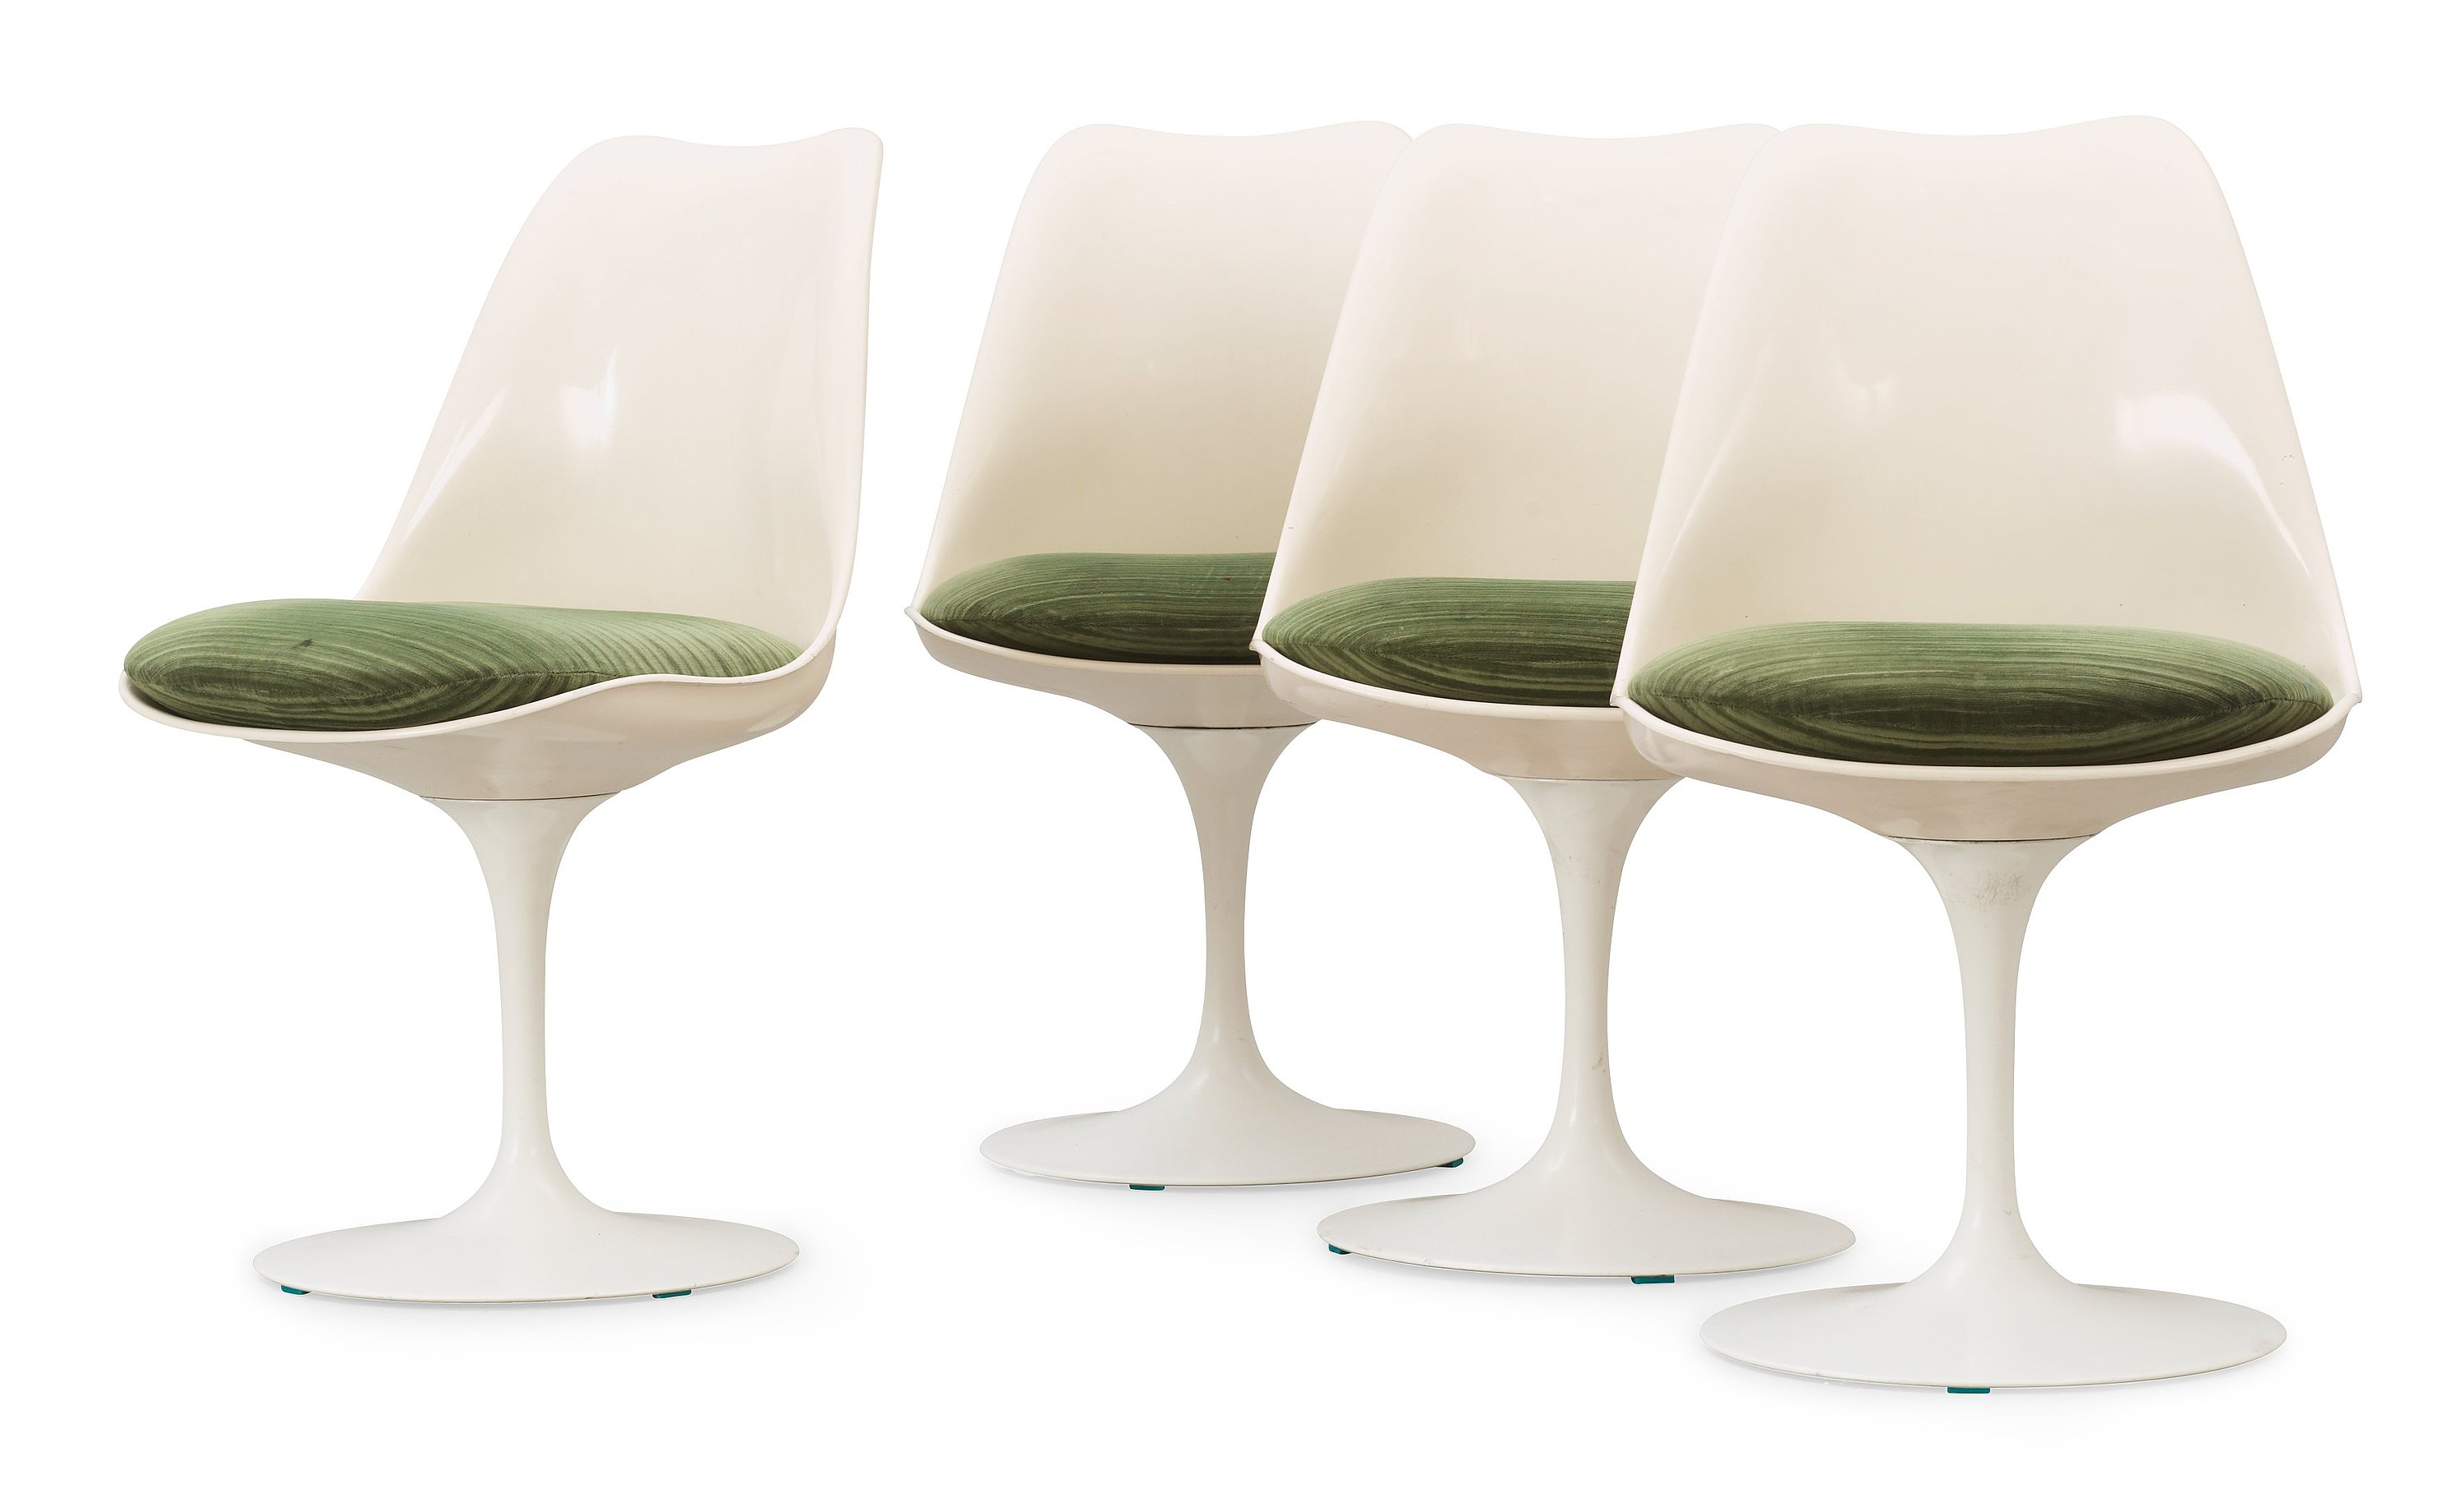 Knoll International Eero Saarinen A Set Of Four Eero Saarinen Tulip Chairs Knoll